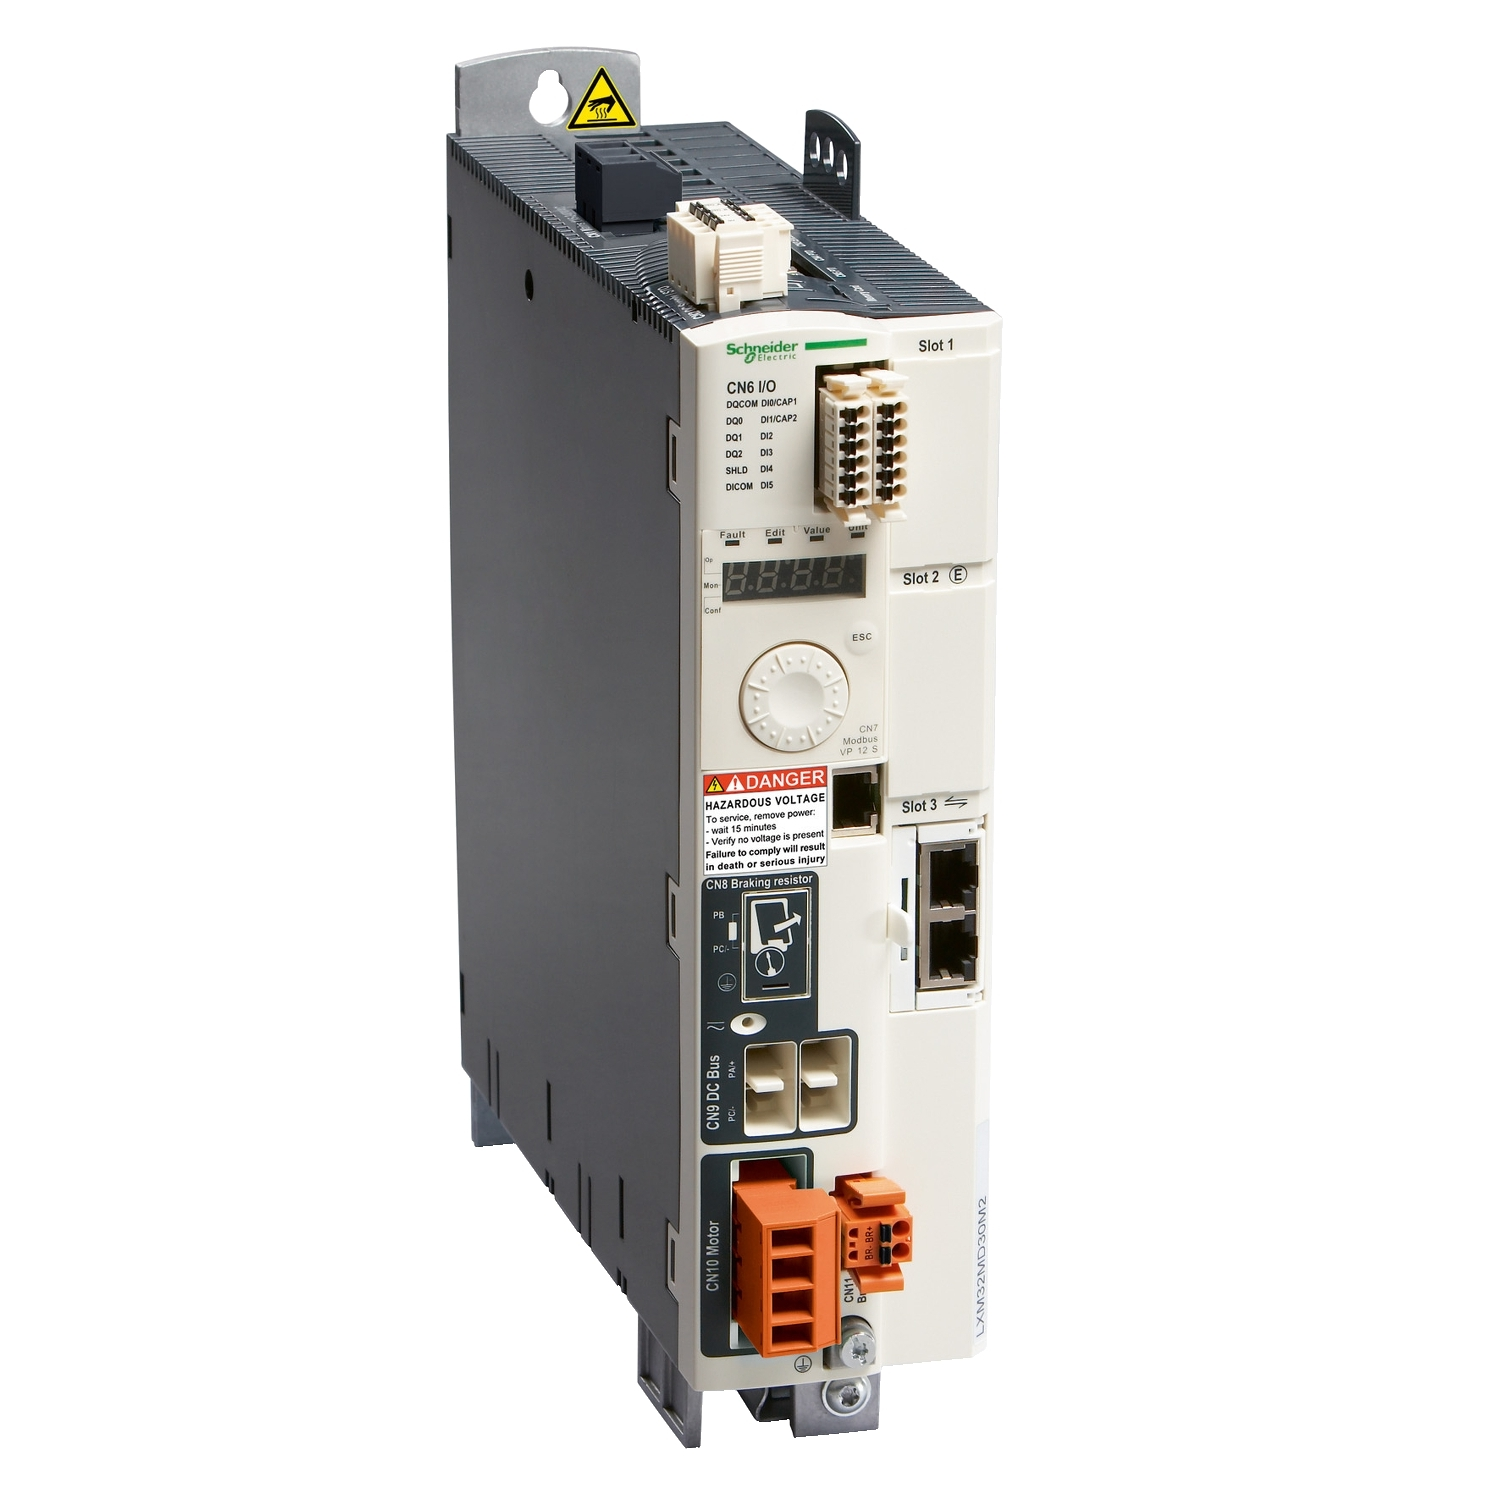 motion servo drive - Lexium 32 - three-phase supply voltage 208/480V - 1.8 kW